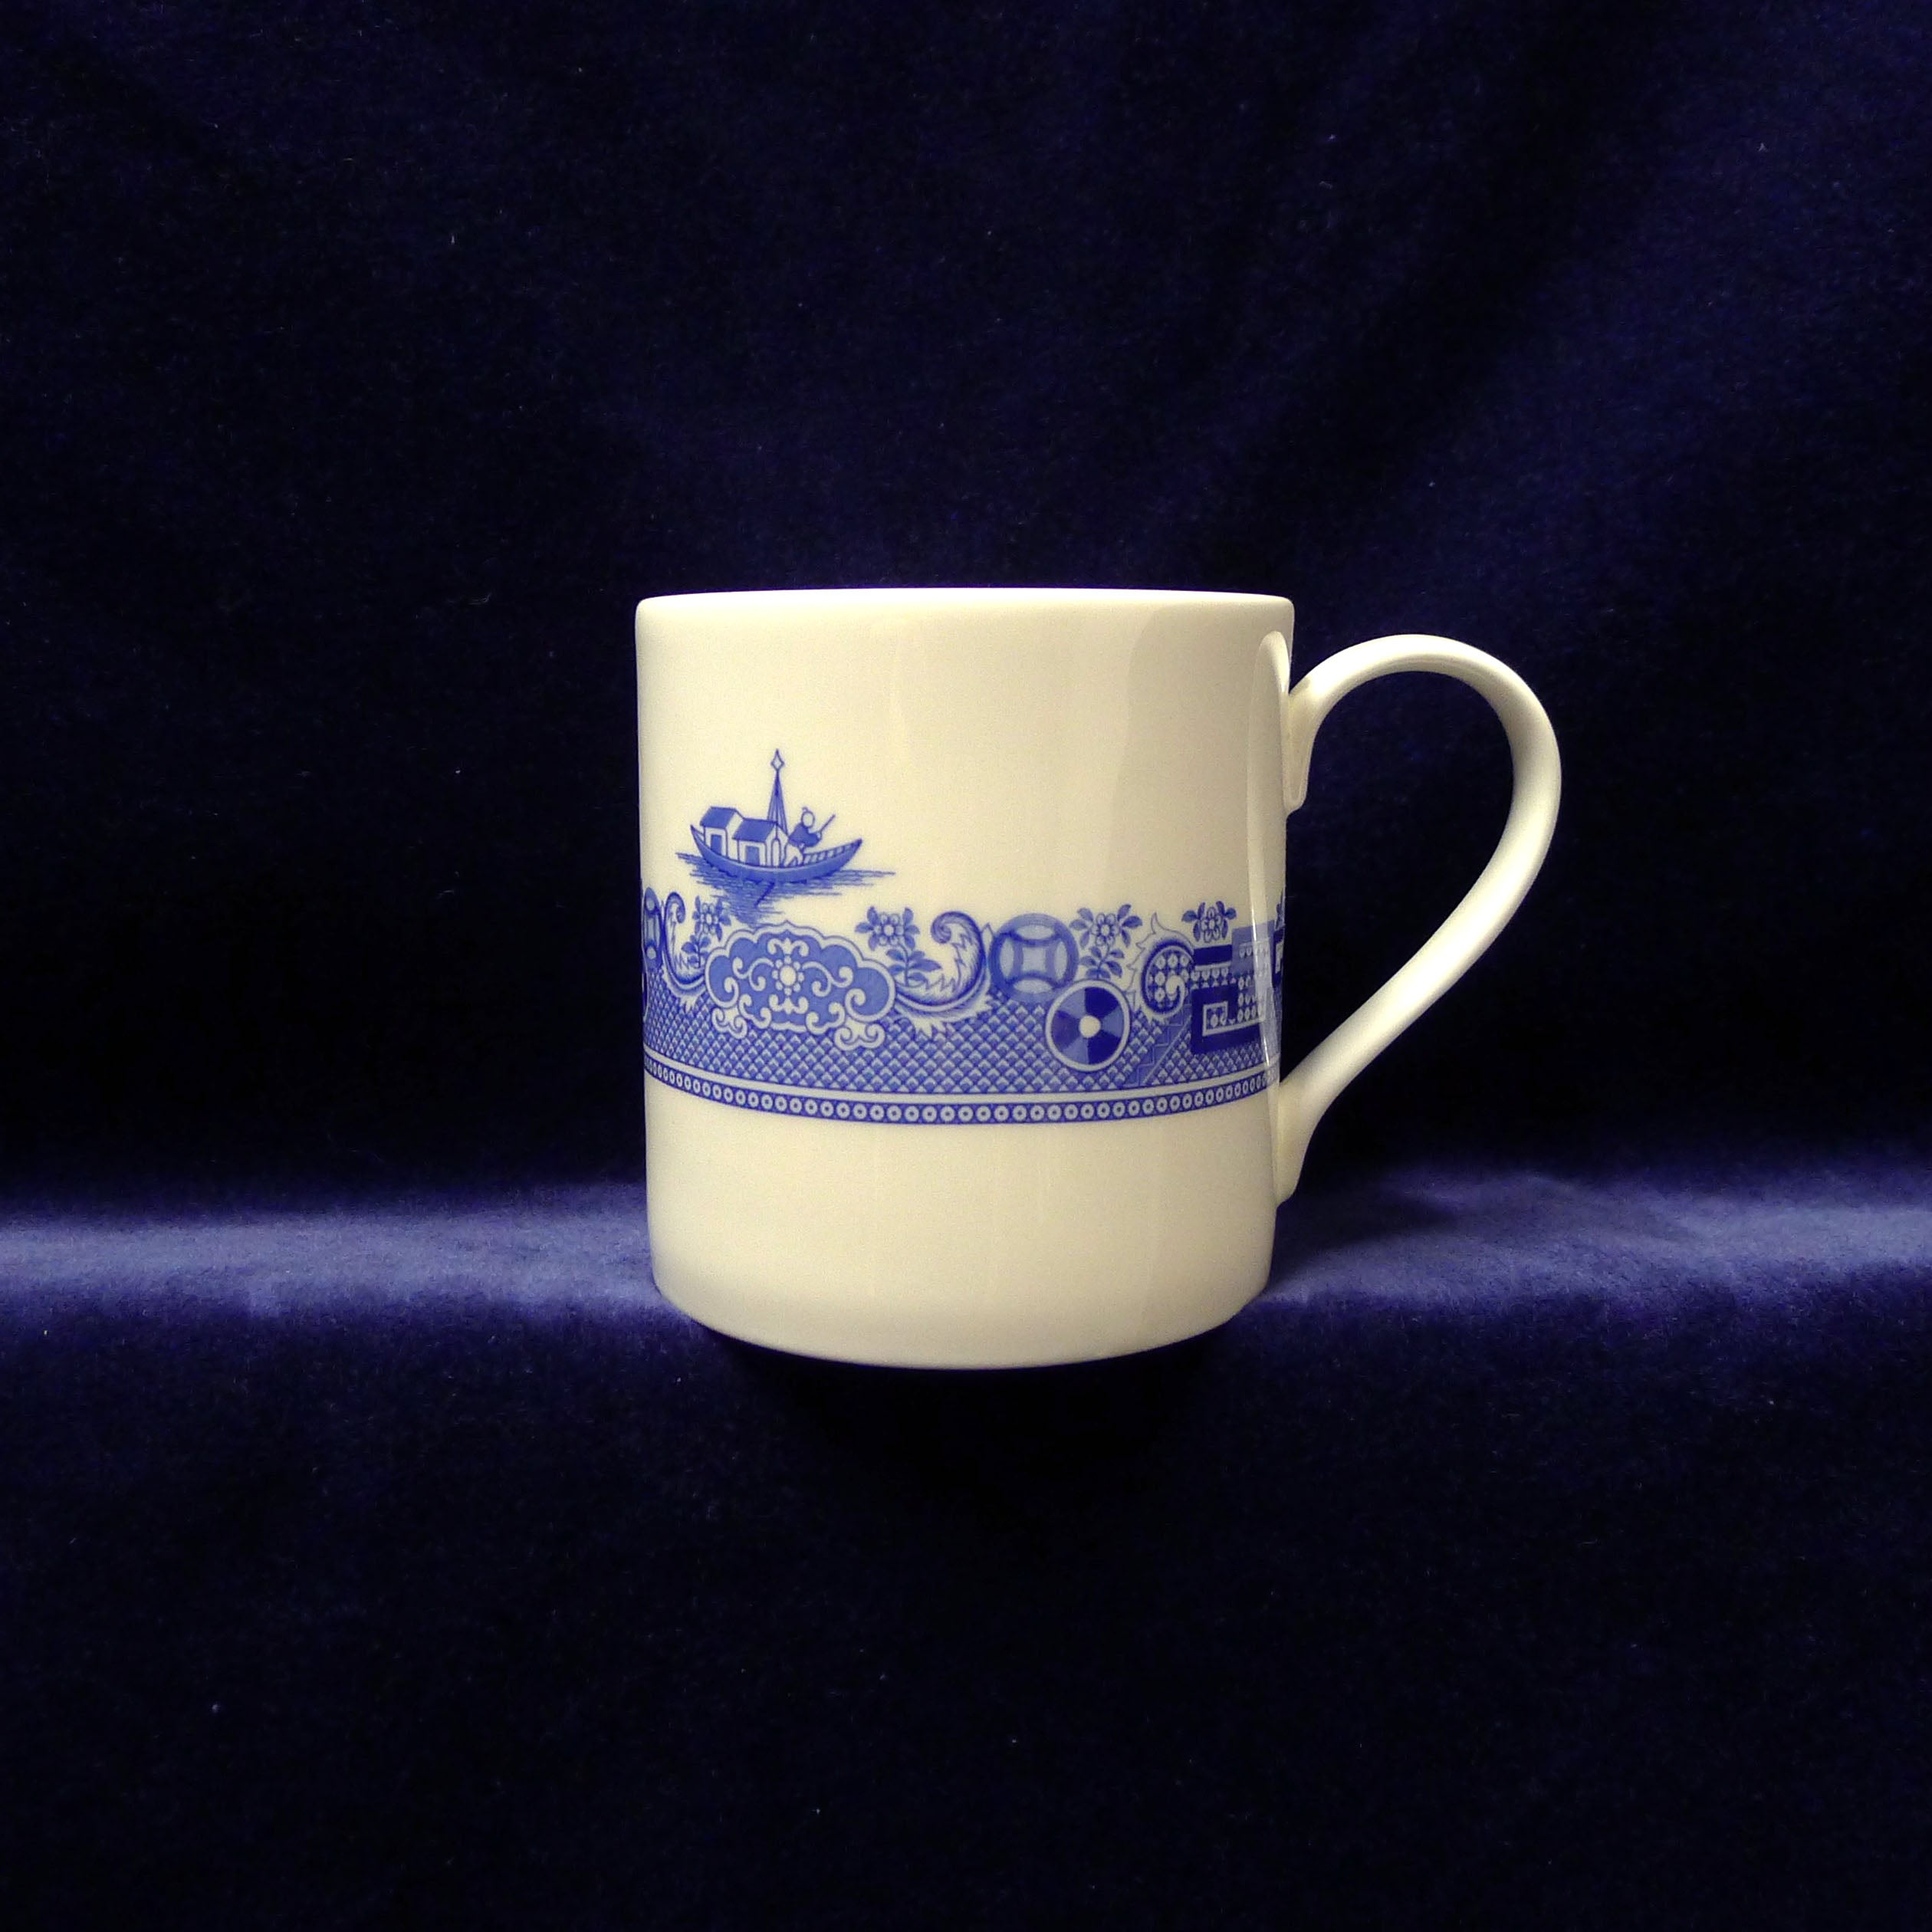 Deconstructed Willow Pattern Mug